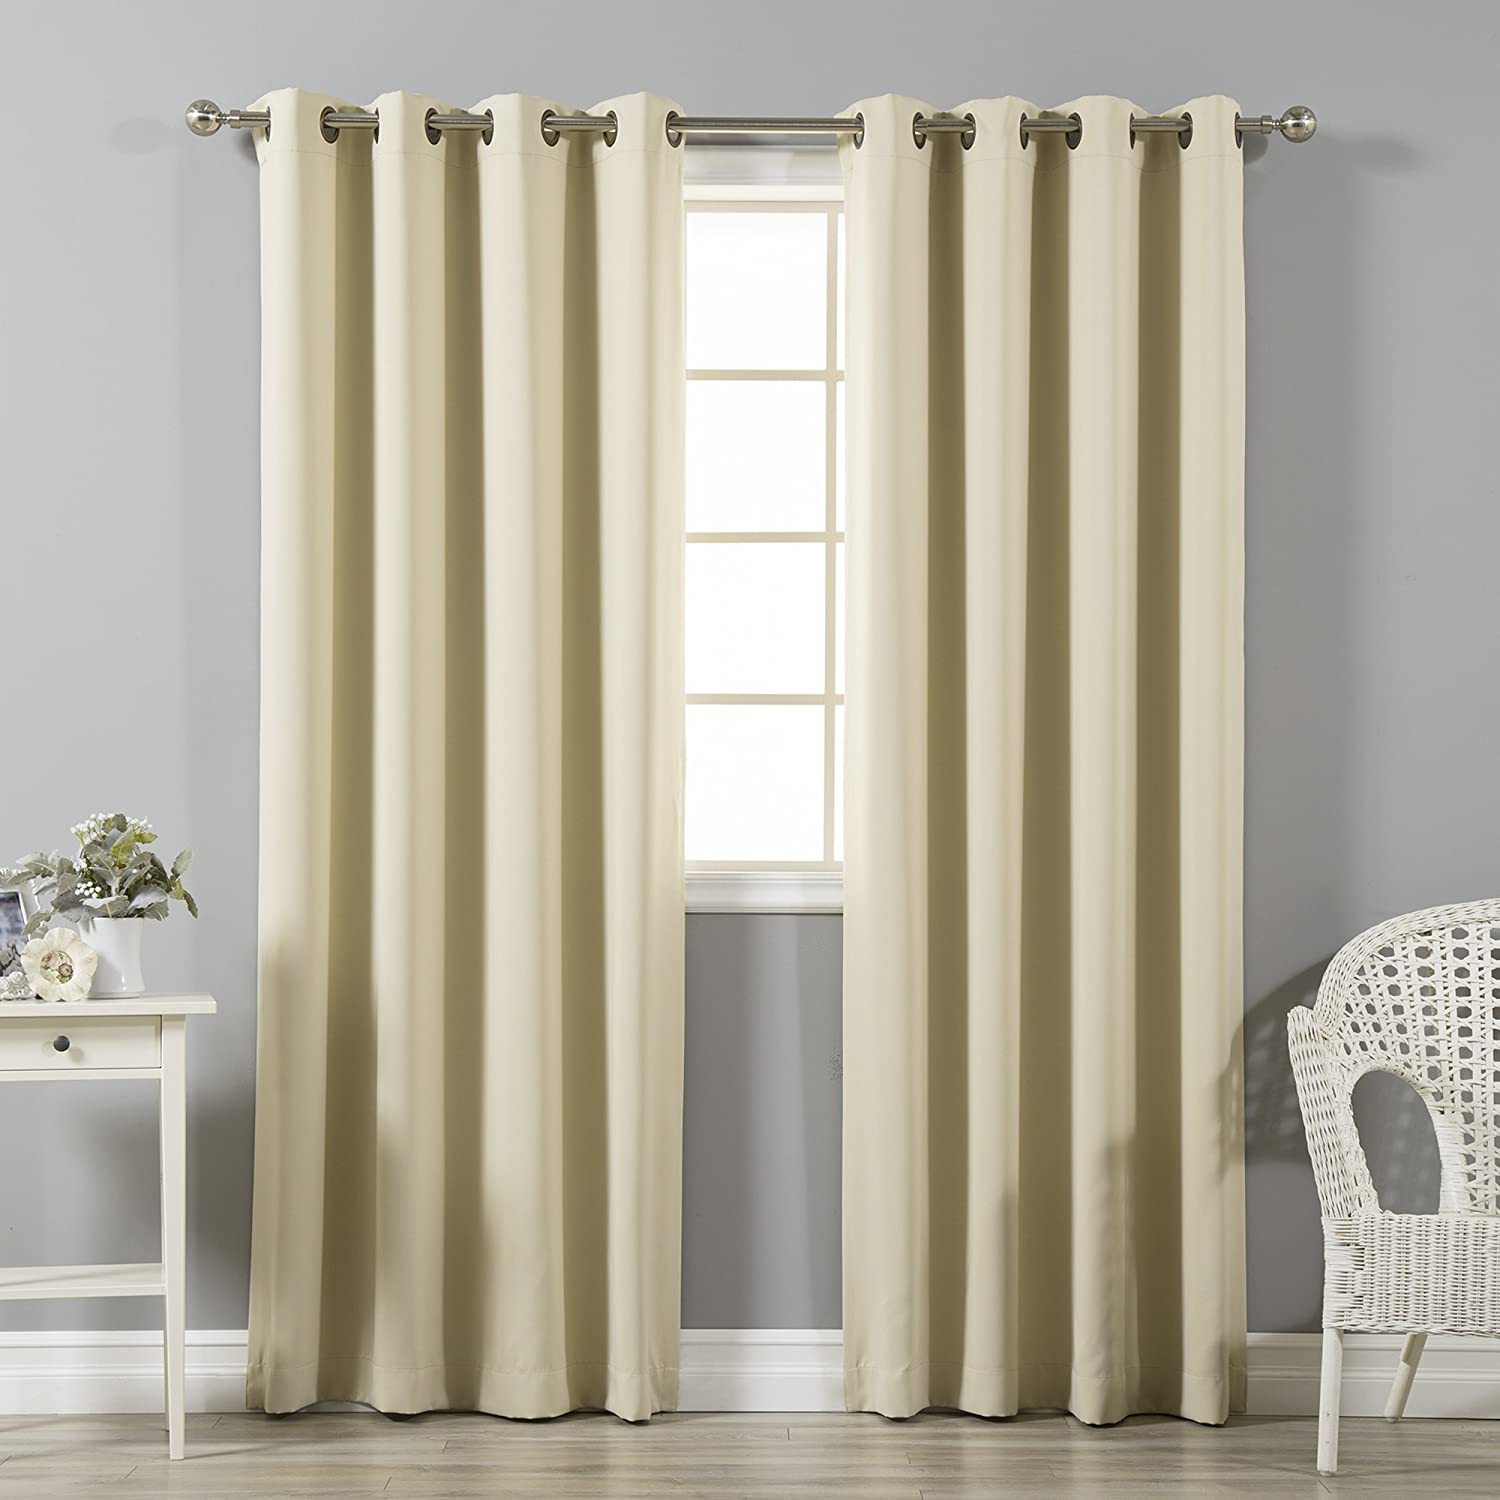 of lambrequin the curtains curtain photos design italian living renaissance room with best